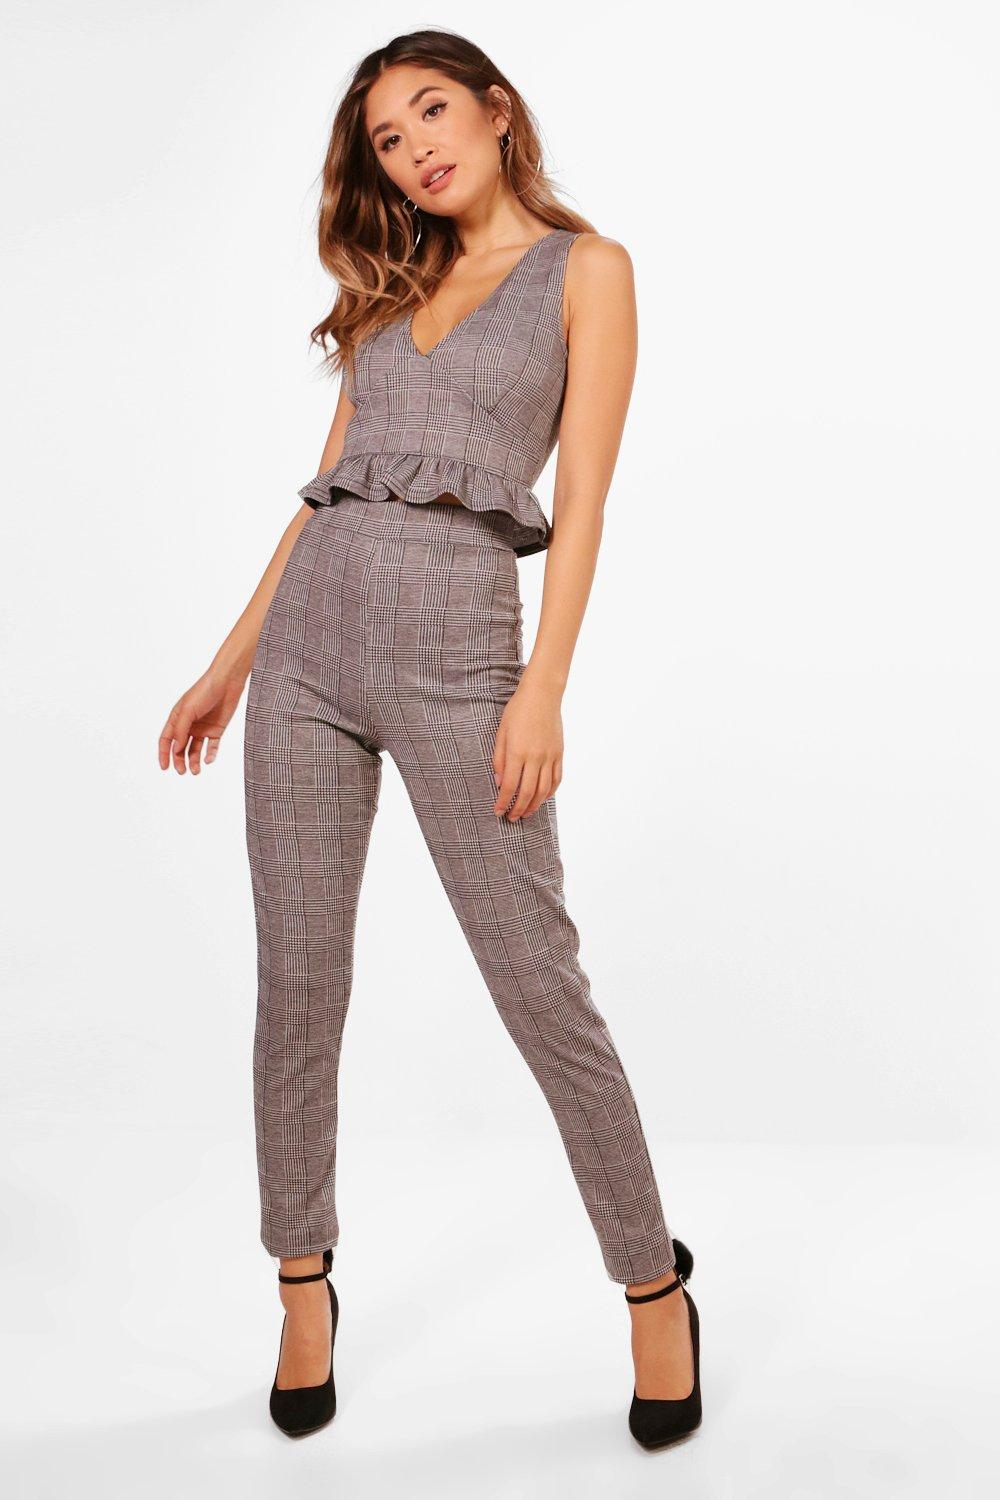 grey Plunge Skinny Set Check Crop Trouser and fYd6OaOq